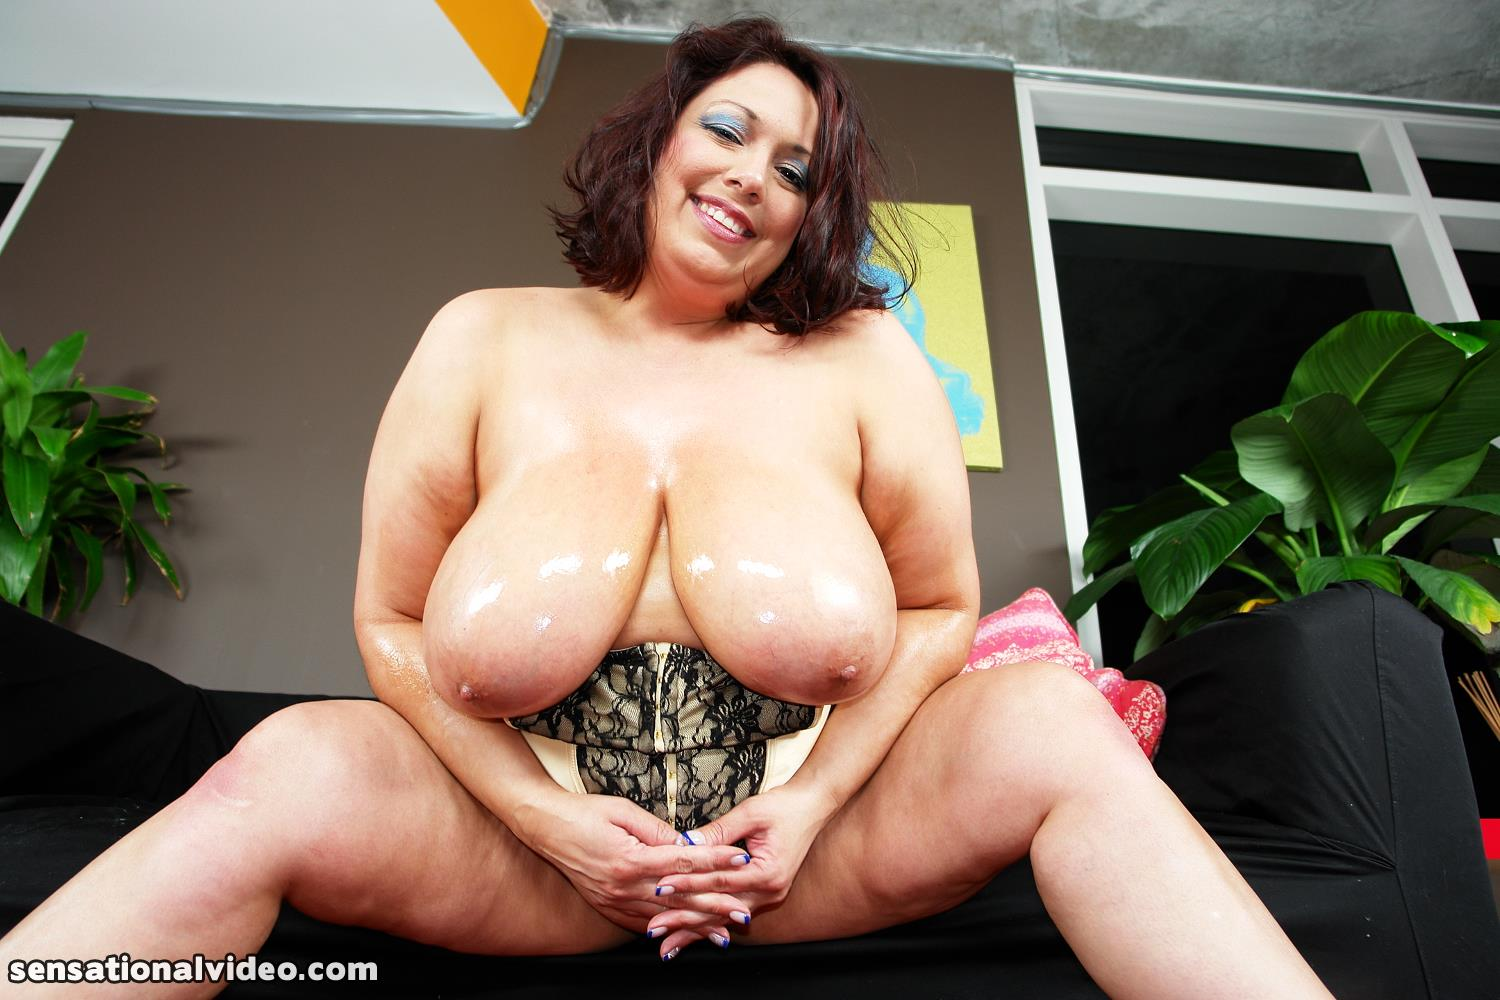 Rikki A Truly Beautiful Woman But Don T Let That Smile Fool You